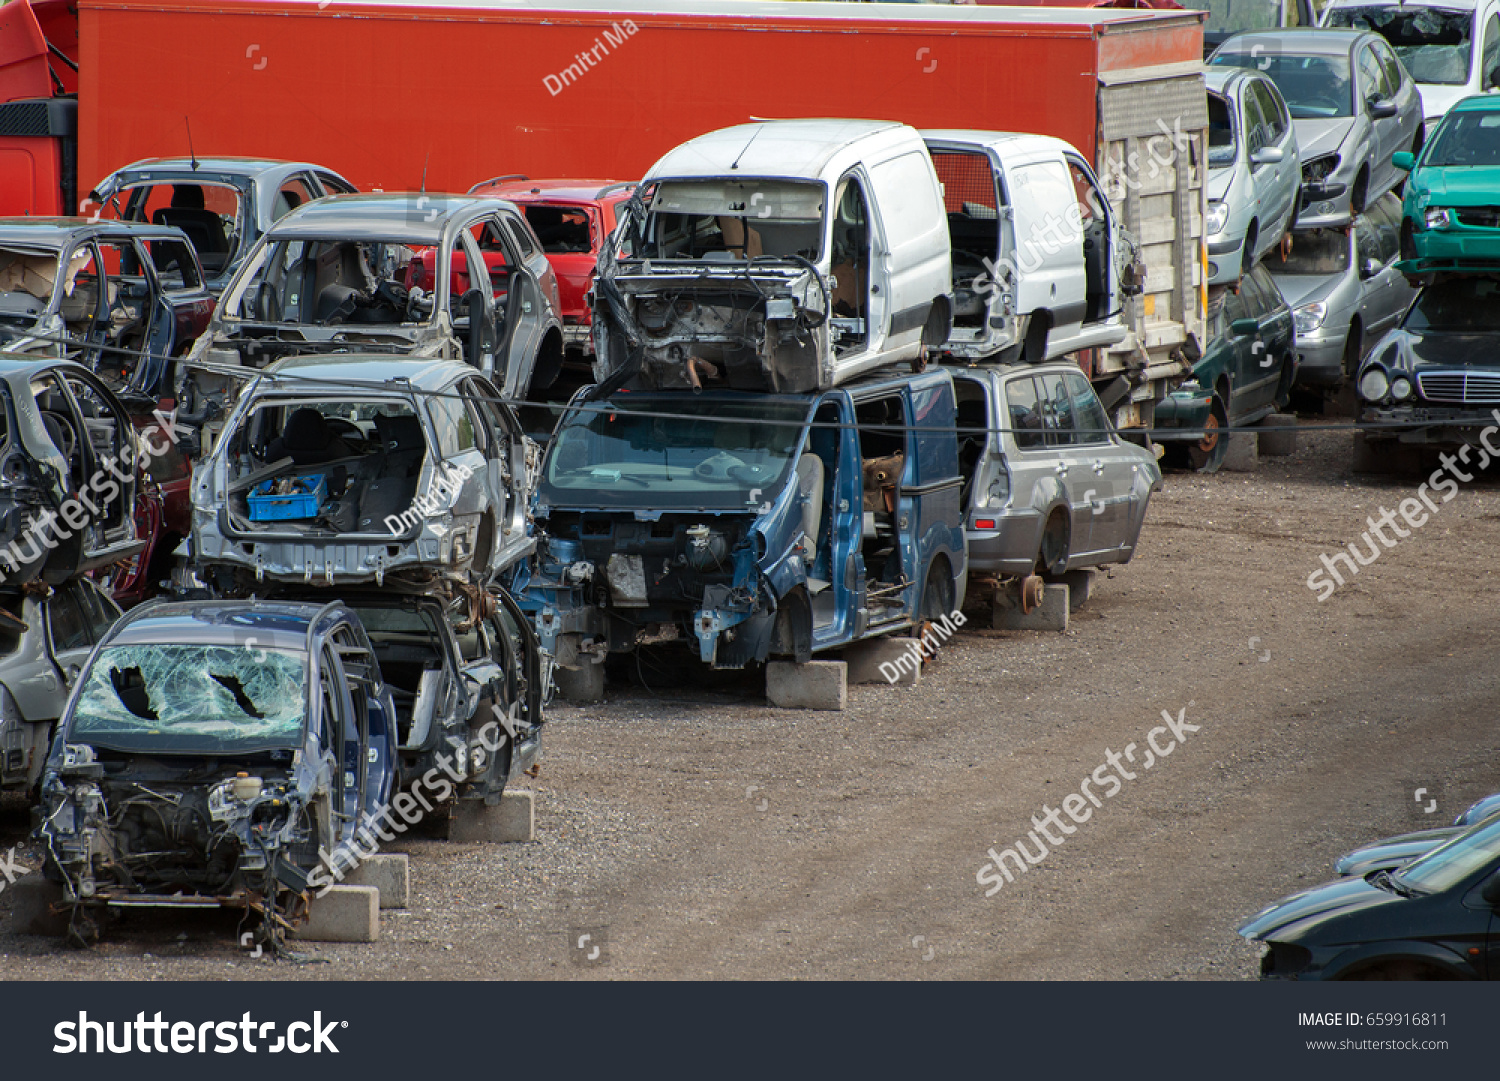 Old Vehicles Scrap Yard Stock Photo 659916811 - Shutterstock